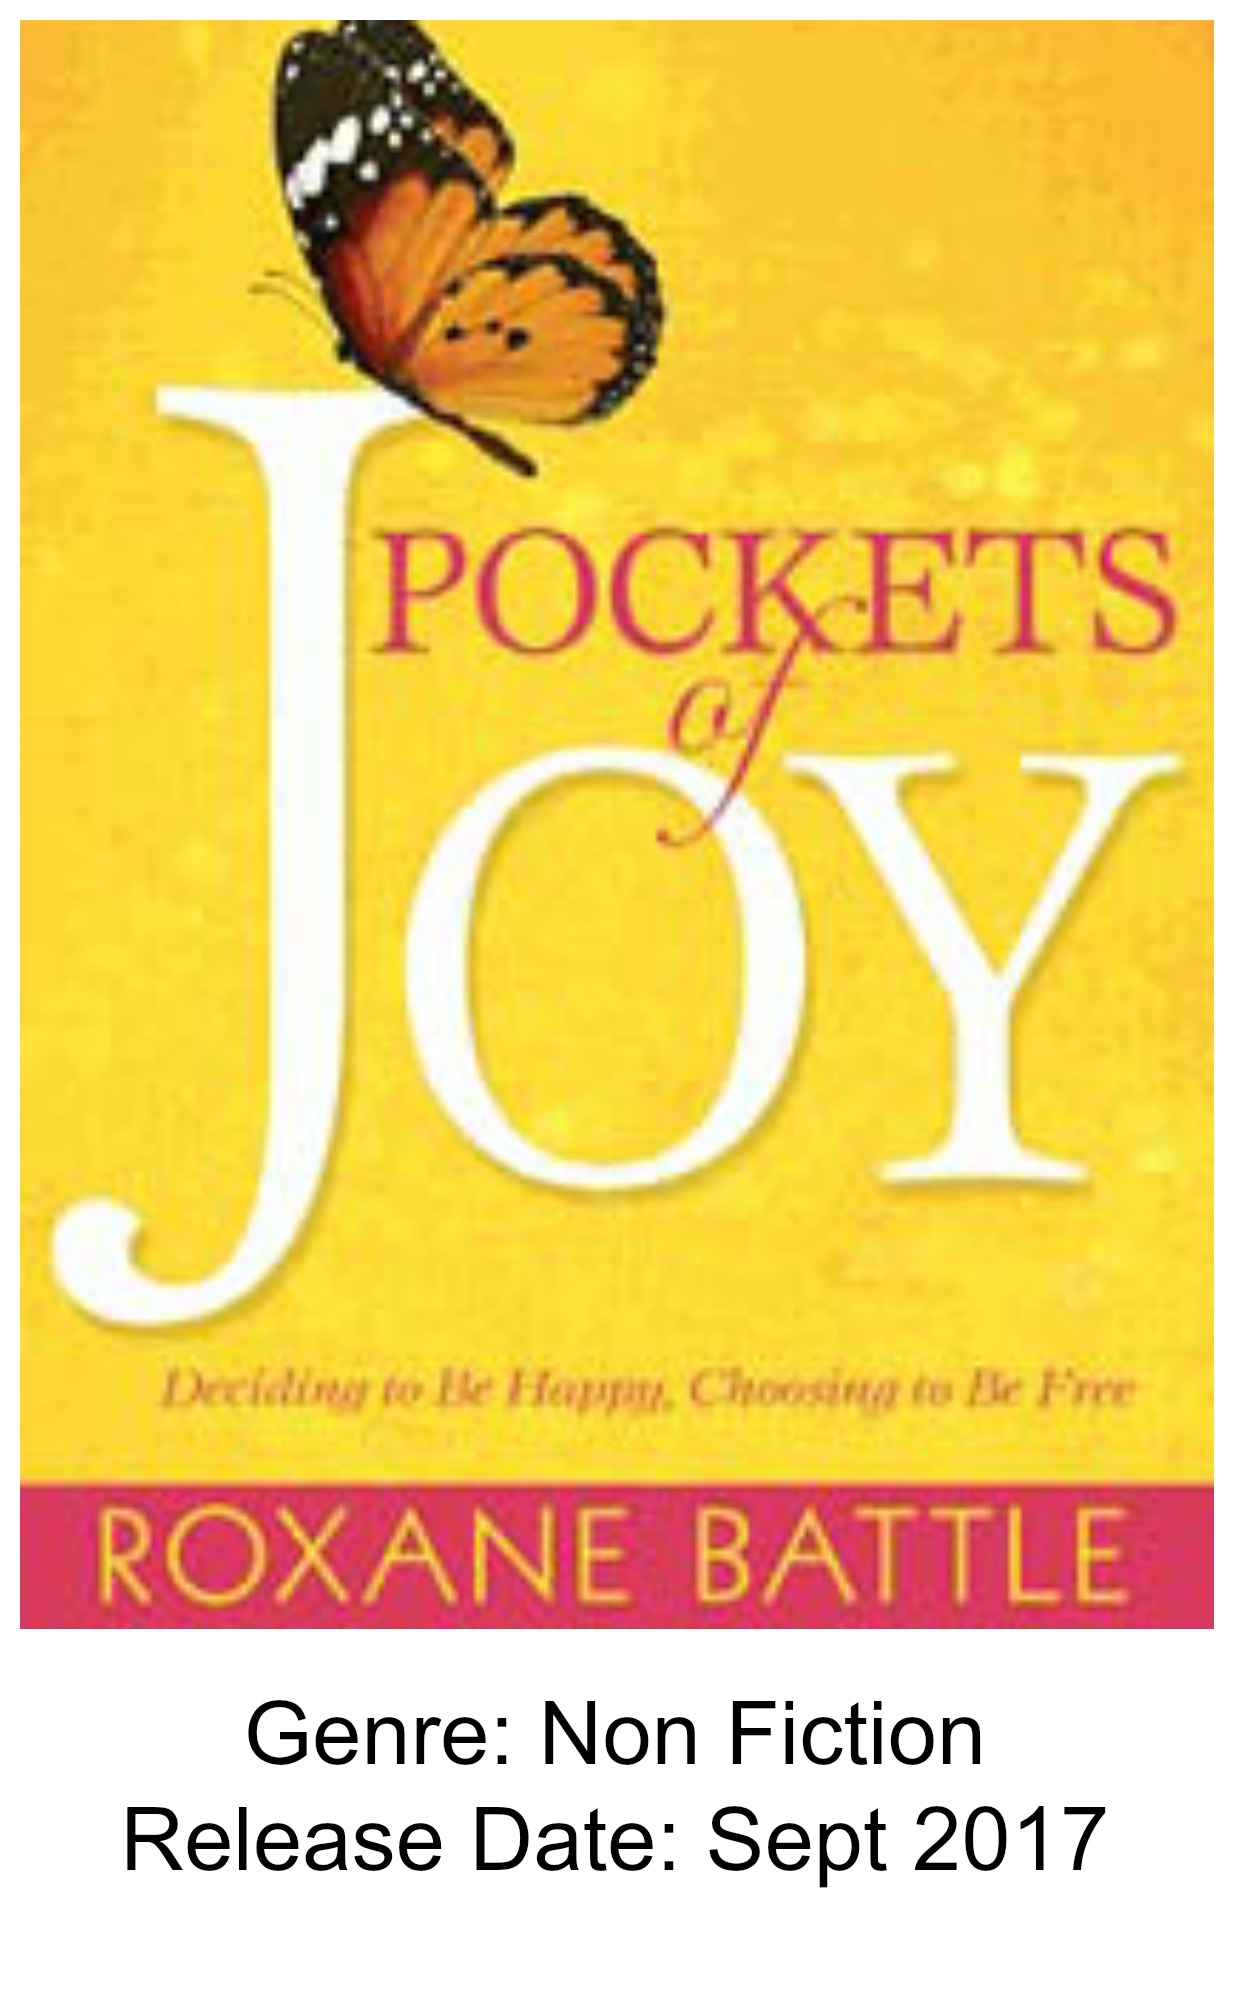 Pockets of joy2